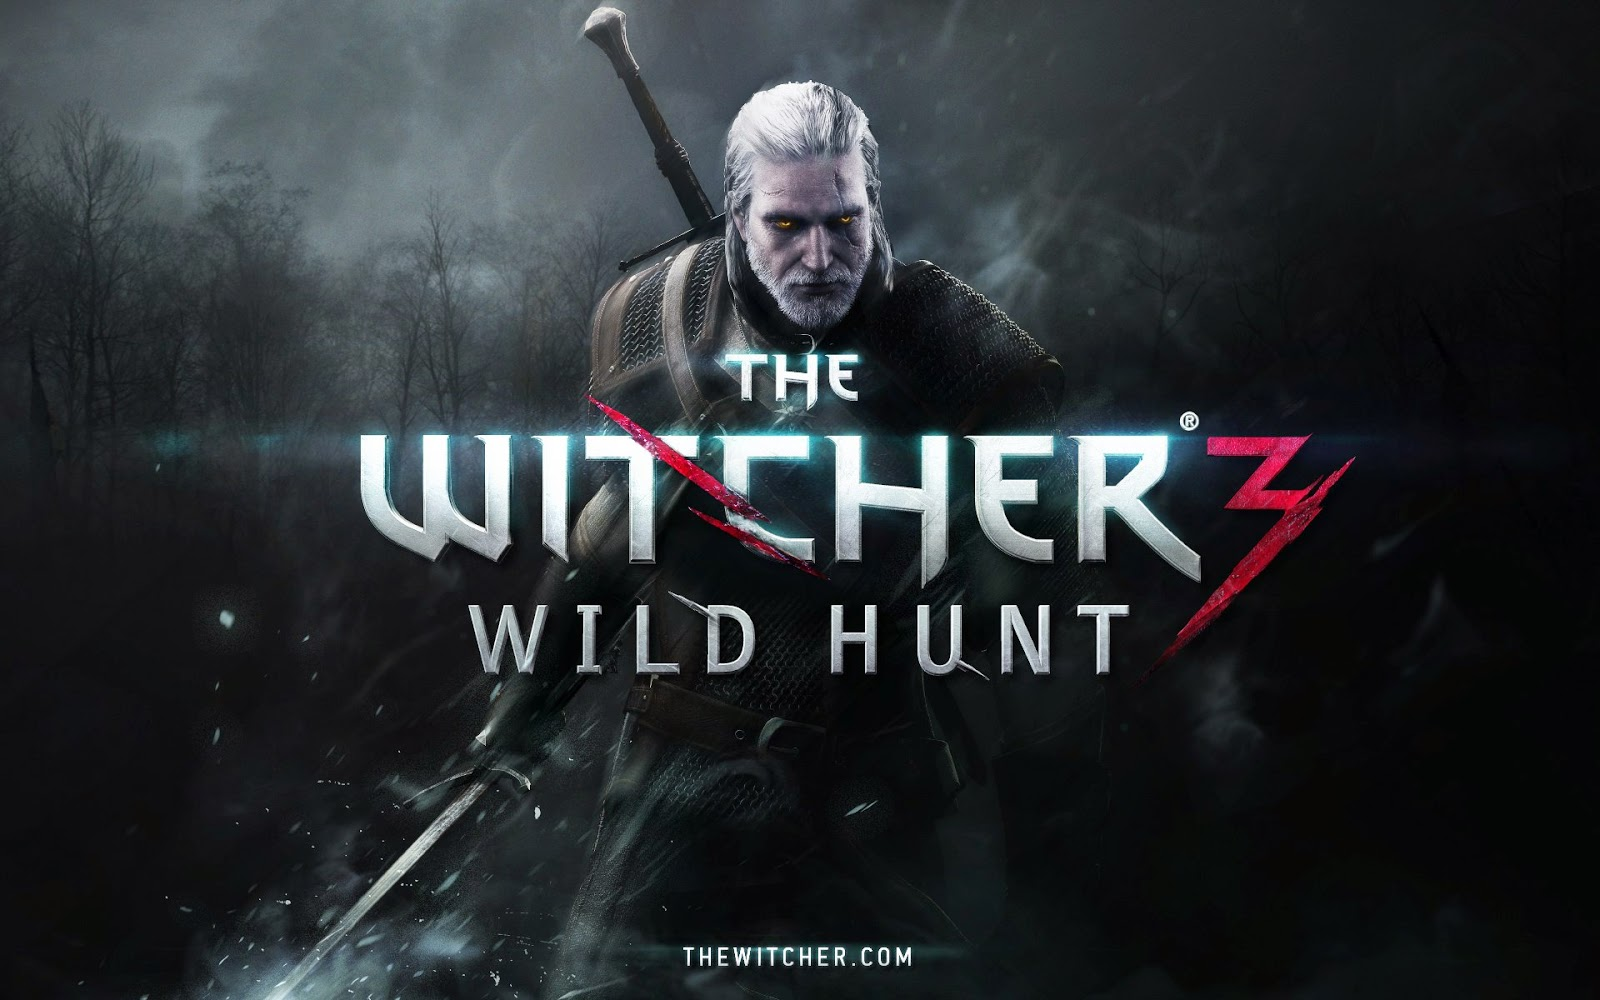 WallpapersWide The Witcher HD Desktop Wallpapers  - the witcher 3 wild hunt game wallpapers